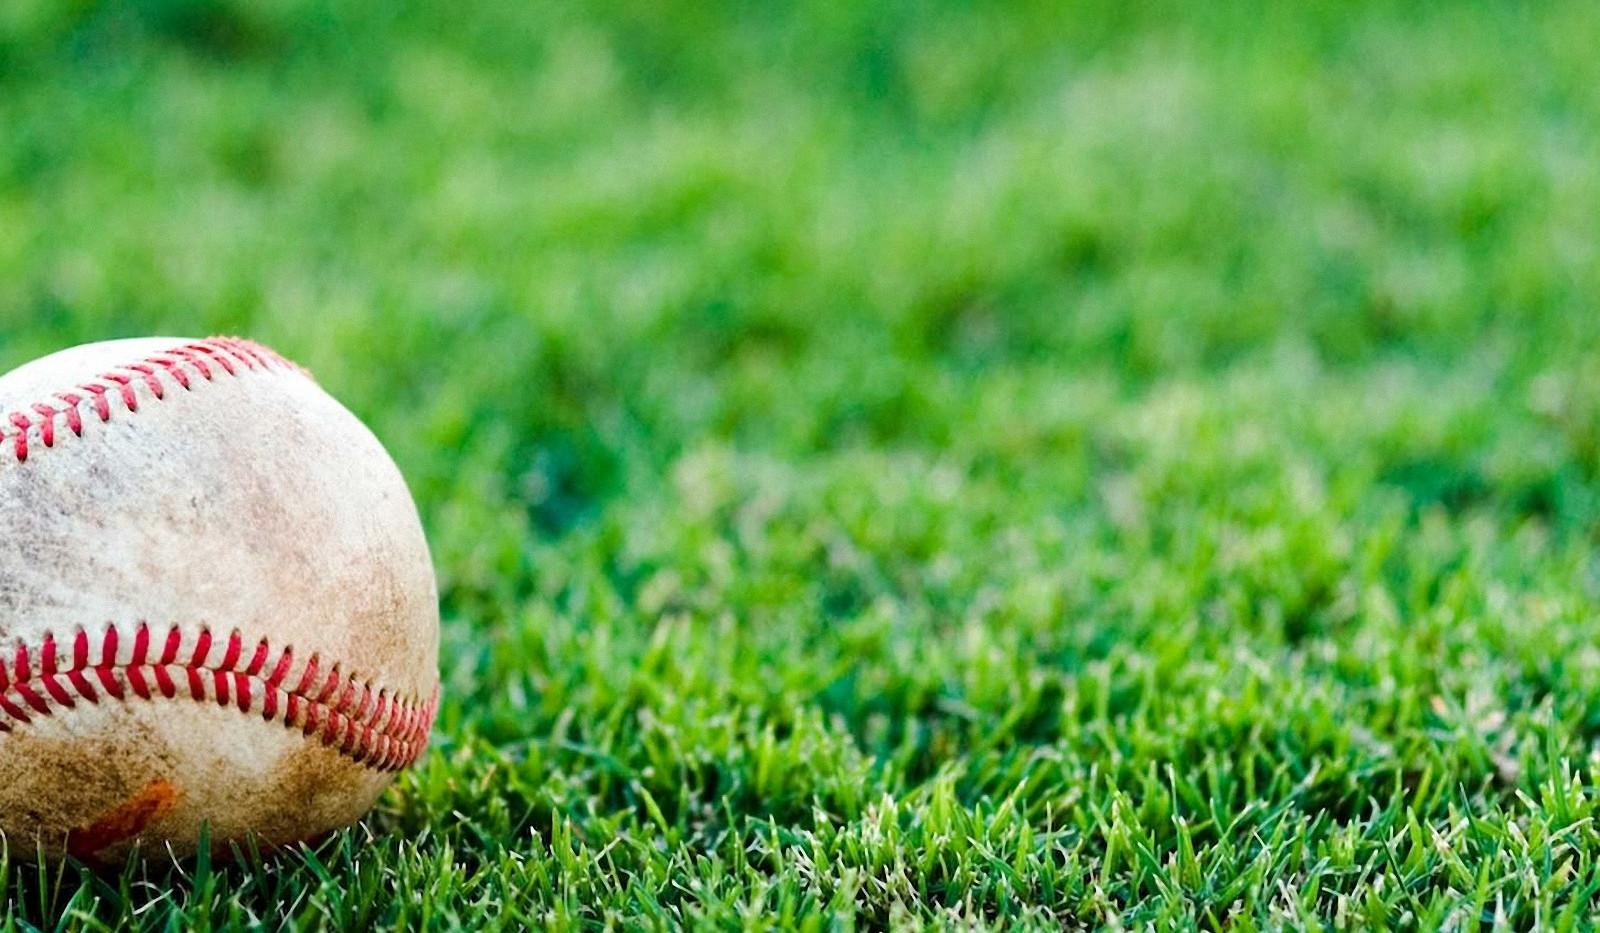 baseball-backgrounds_89141-1600x1200.jpg